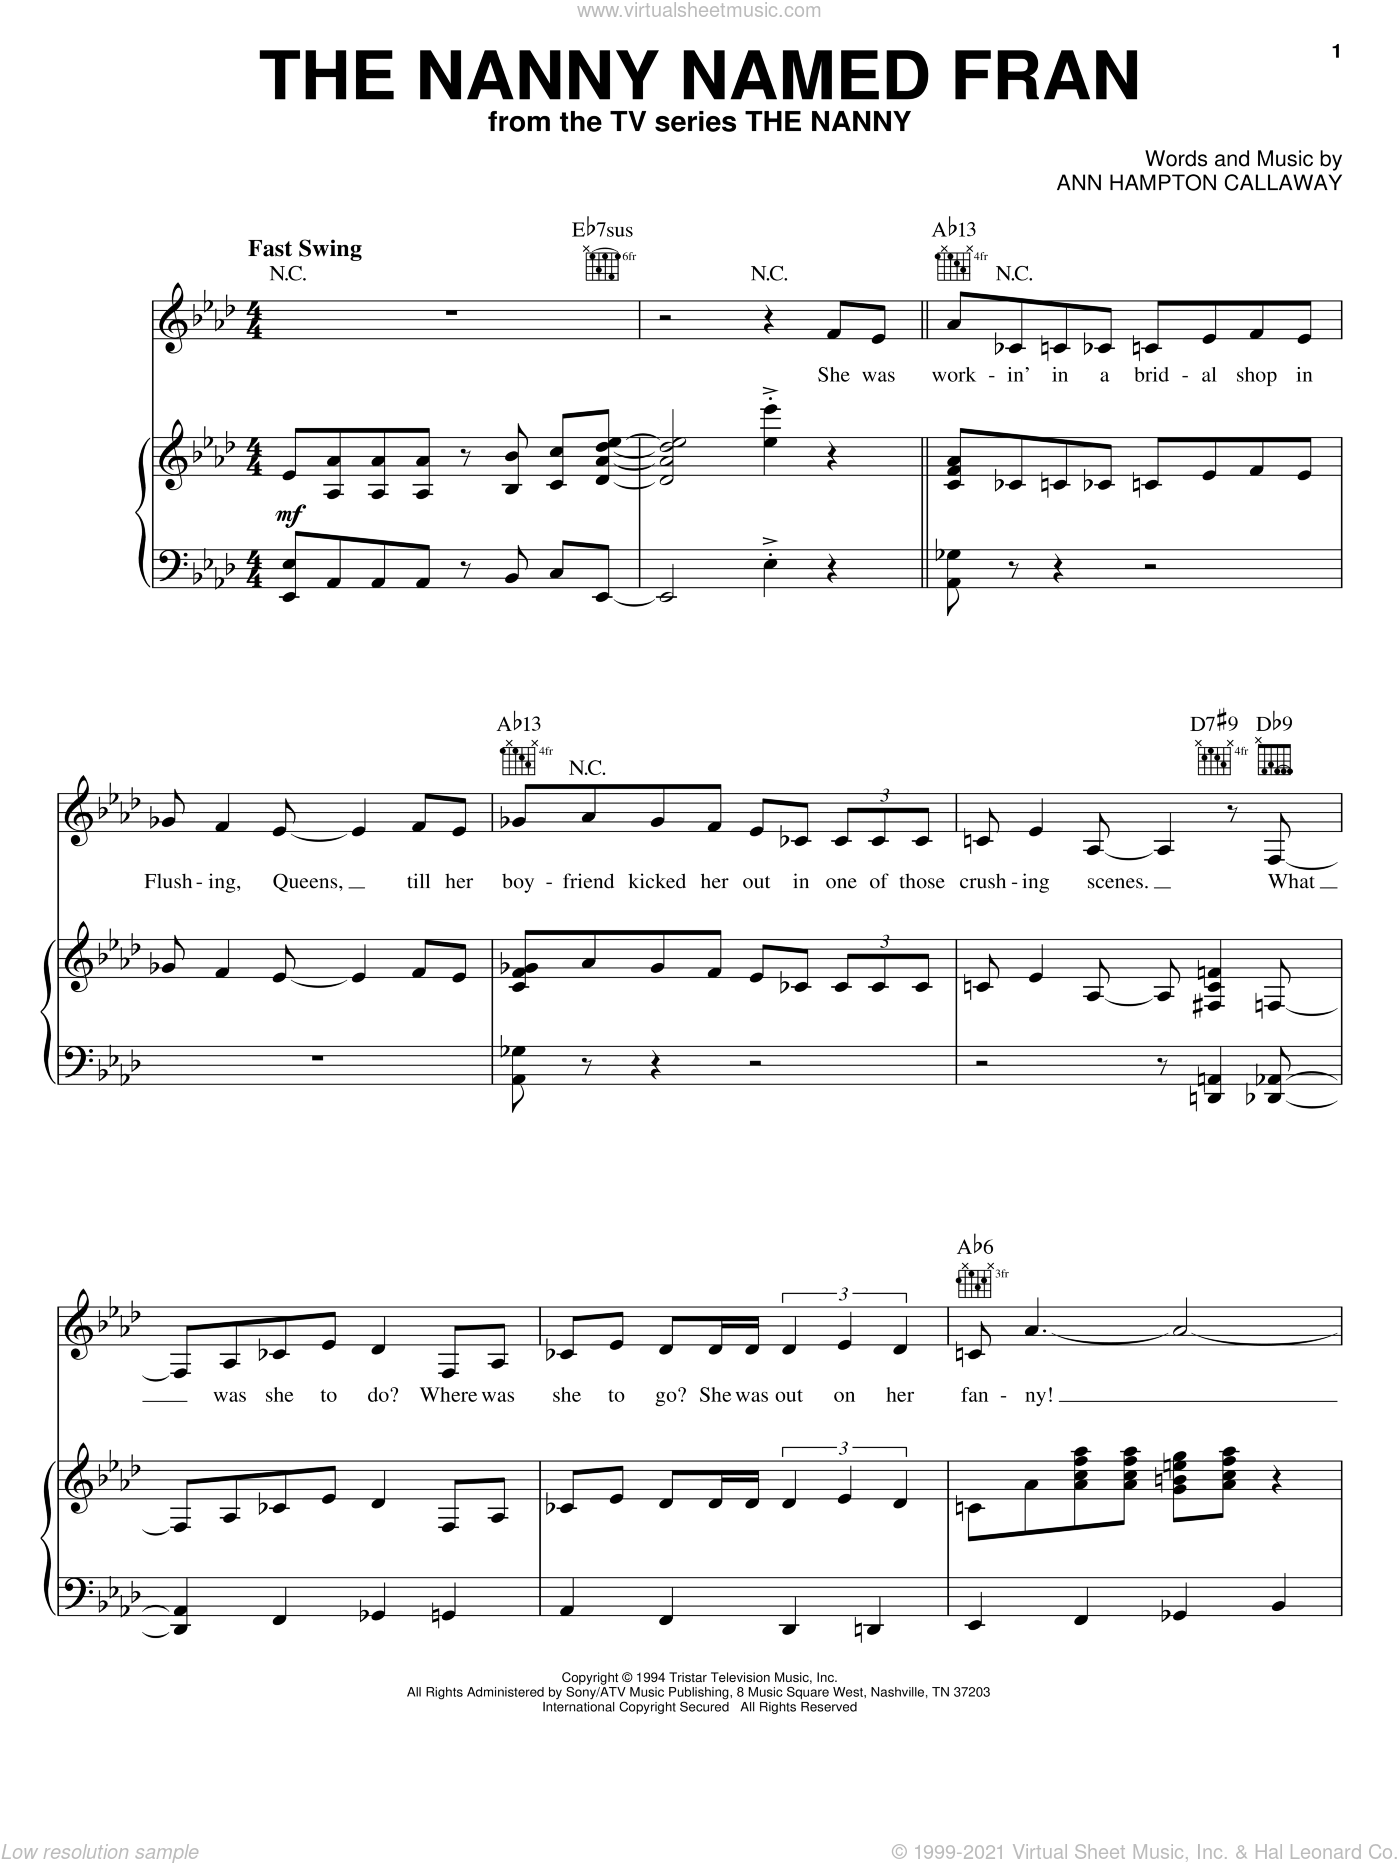 The Nanny Named Fran sheet music for voice, piano or guitar by Ann Hampton Callaway, intermediate skill level